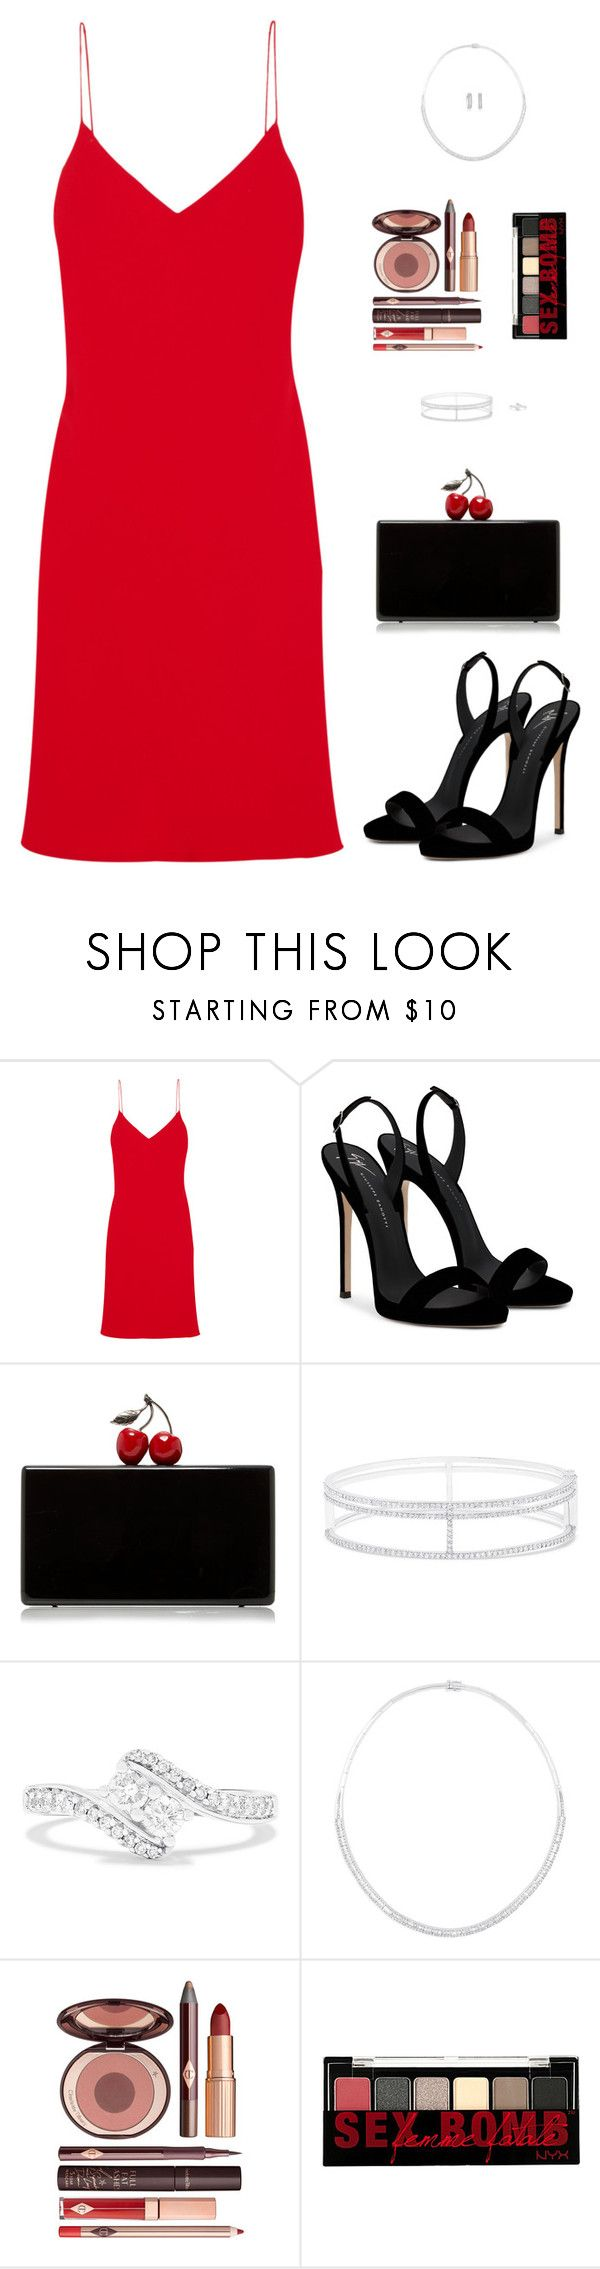 """""""Sin título #4796"""" by mdmsb on Polyvore featuring moda, Calvin Klein Collection, Giuseppe Zanotti, Edie Parker, Effy Jewelry, Charlotte Tilbury y NYX"""